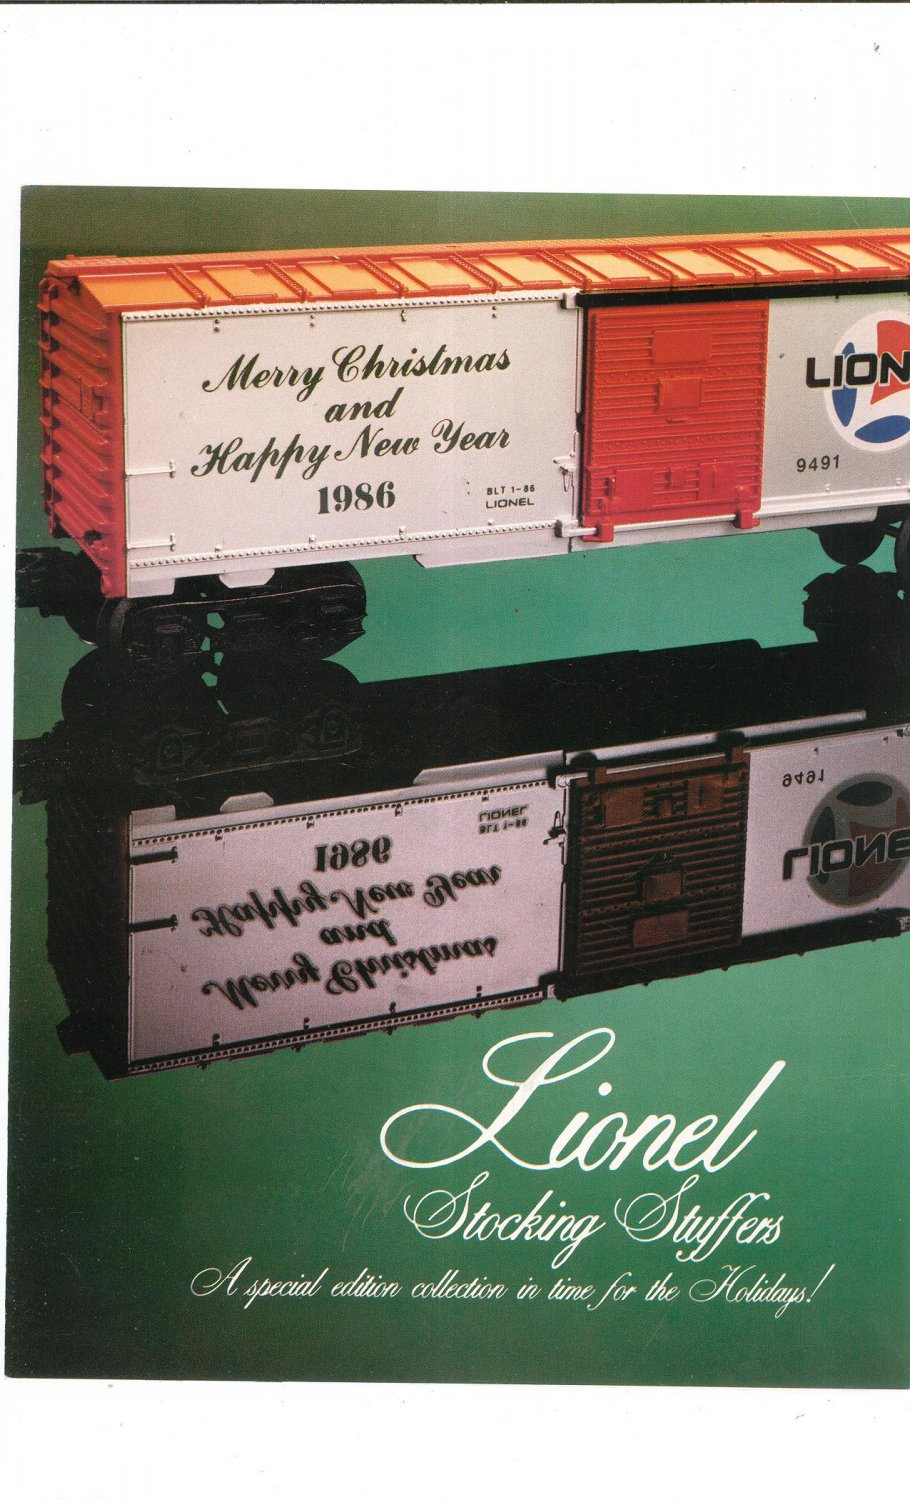 Vintage Lionel Stocking Stuffers Trains Brochure 1986 Not PDF Free Shipping Offer